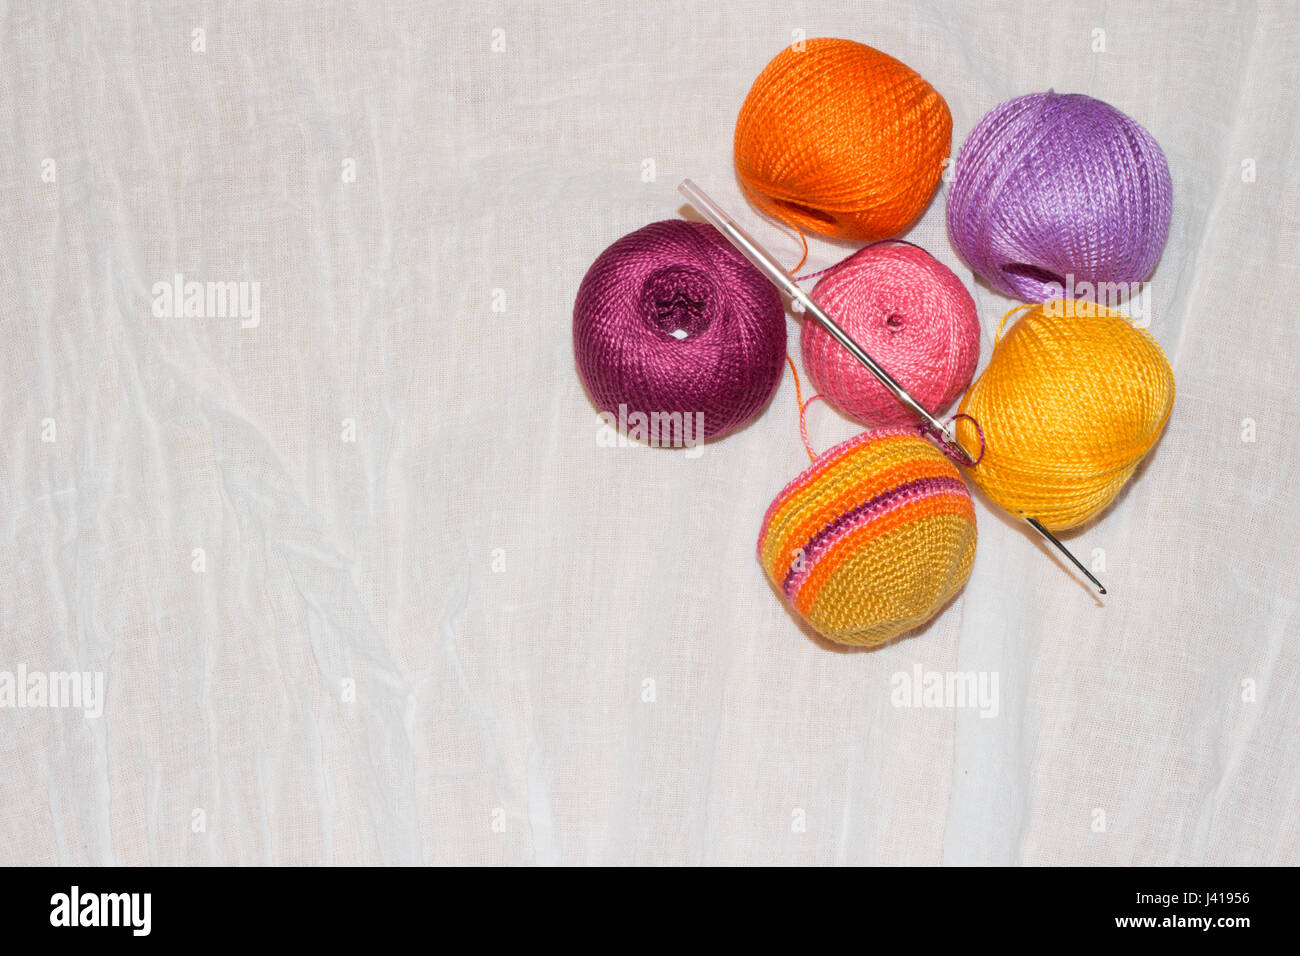 crocheting in progress and colorful cotton thread balls on the white linen background with copy space - Stock Image